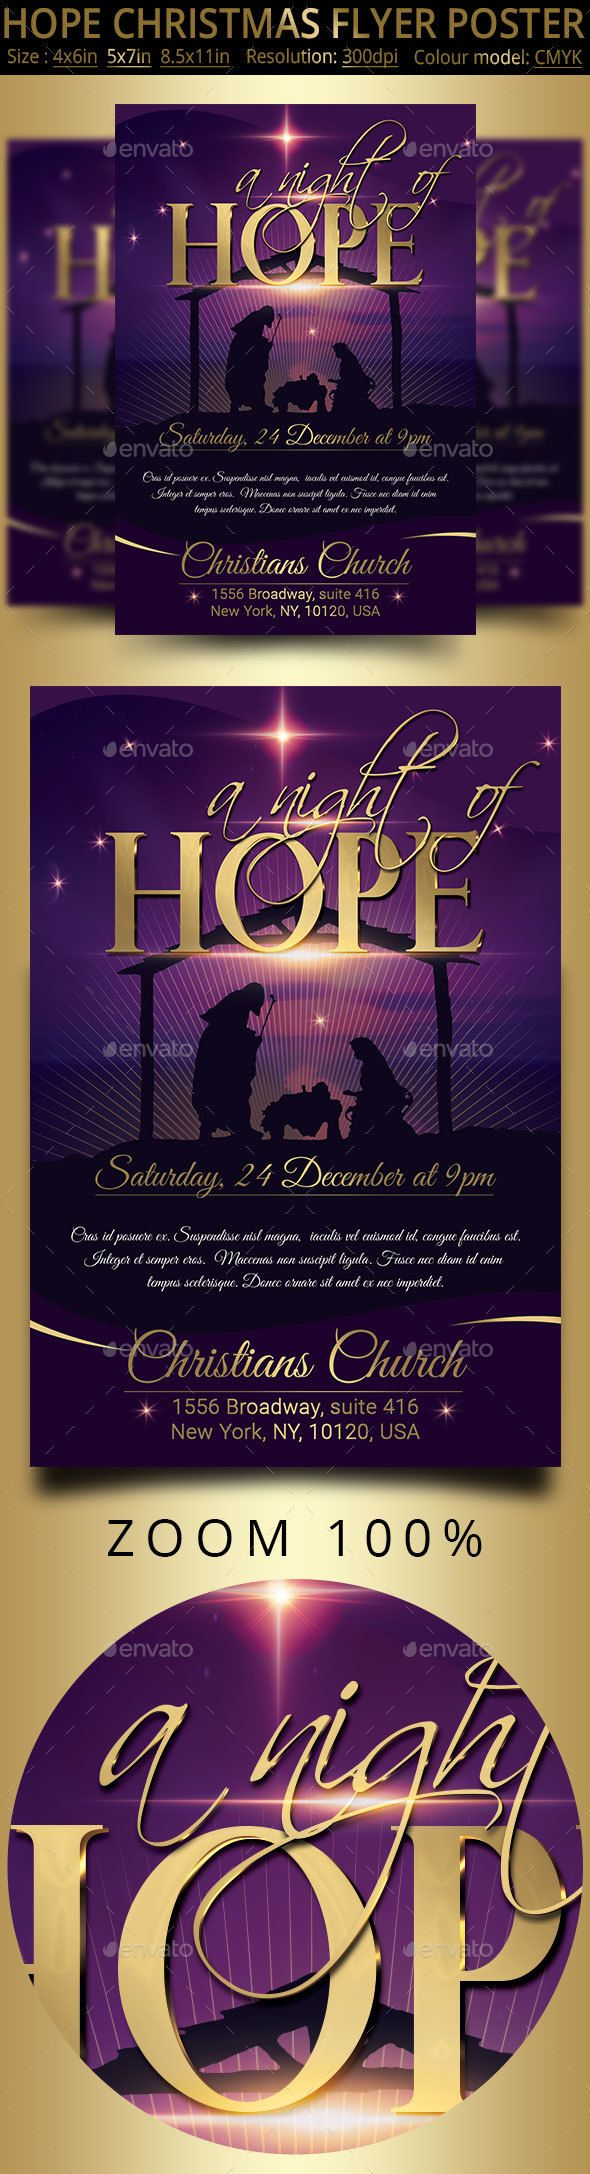 Hope Christmas Flyer Poster #celebration #music  • Download here → https://graphicriver.net/item/hope-christmas-flyer-poster/21108393?ref=pxcr